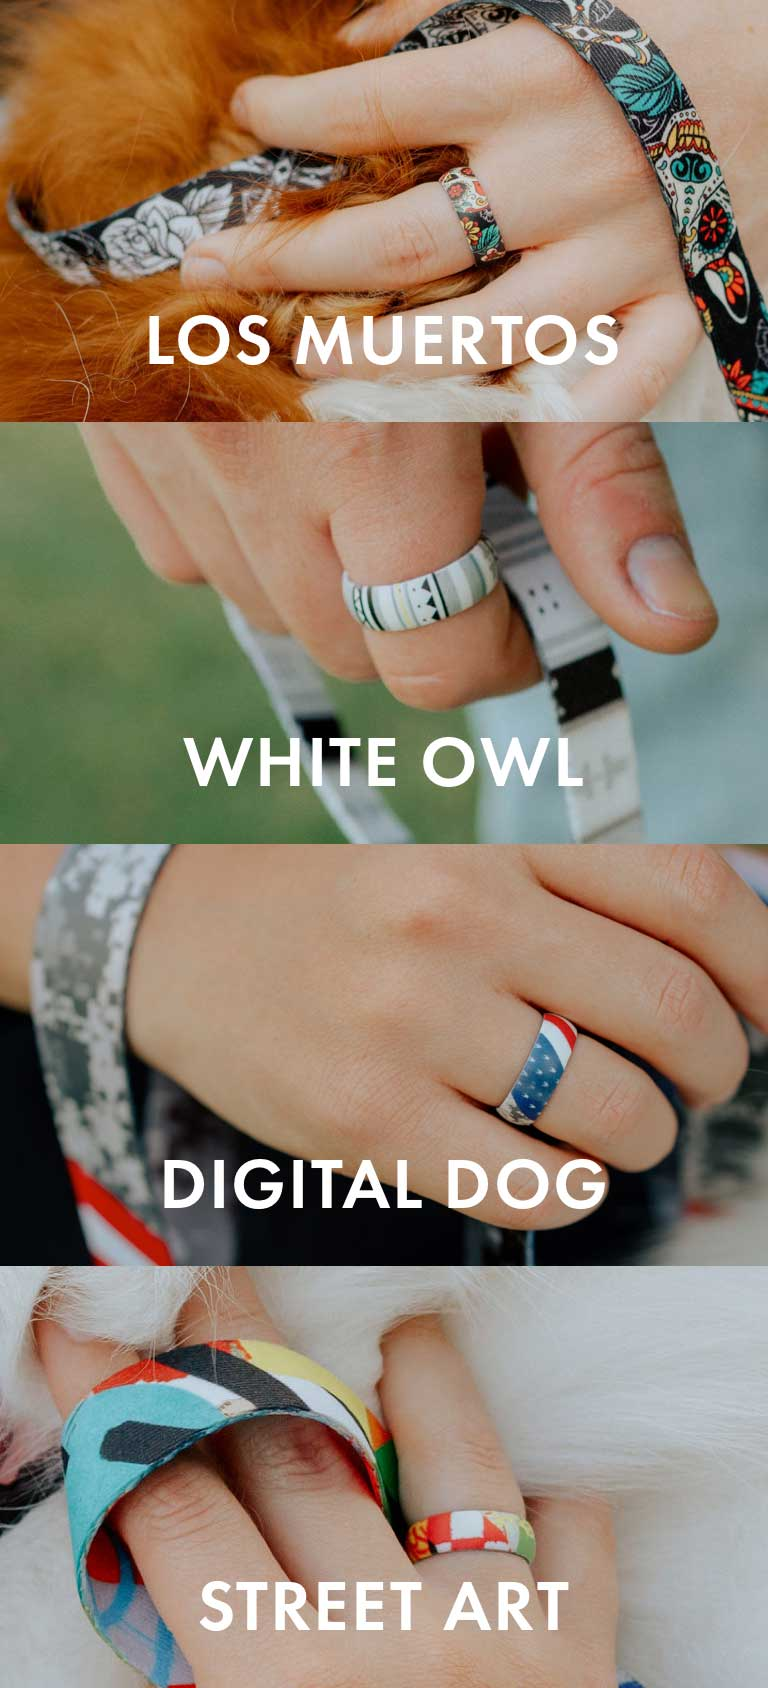 Inked Flexible Rings | Wolfgang | Los Muertos Design | White Owl Design | Digital Dog Design | Street Art Design